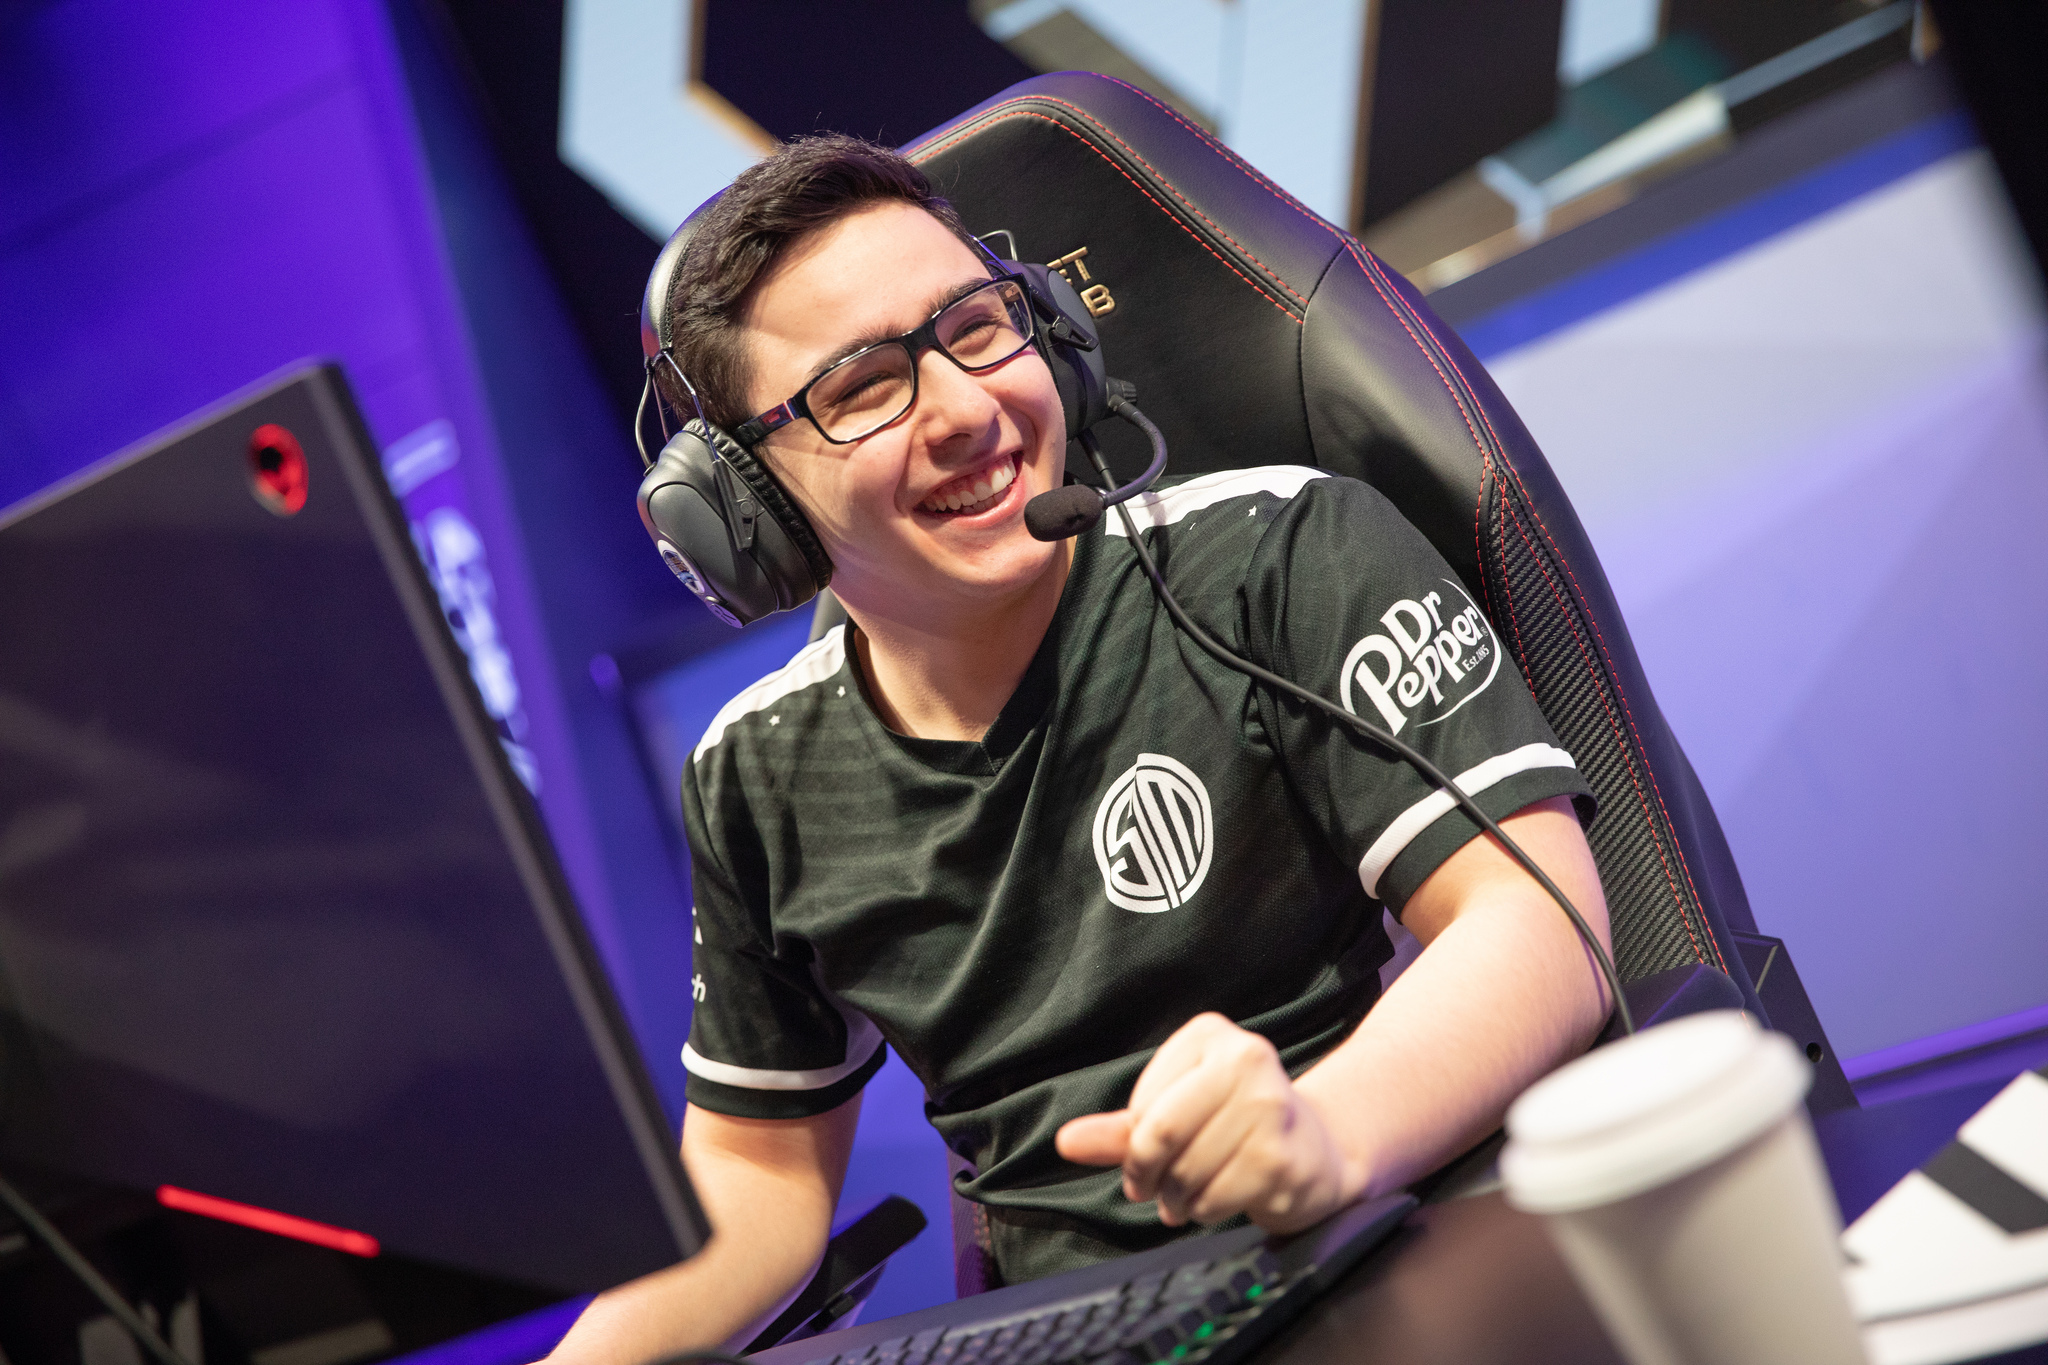 Broken Blade of TSM celebrates after a win.